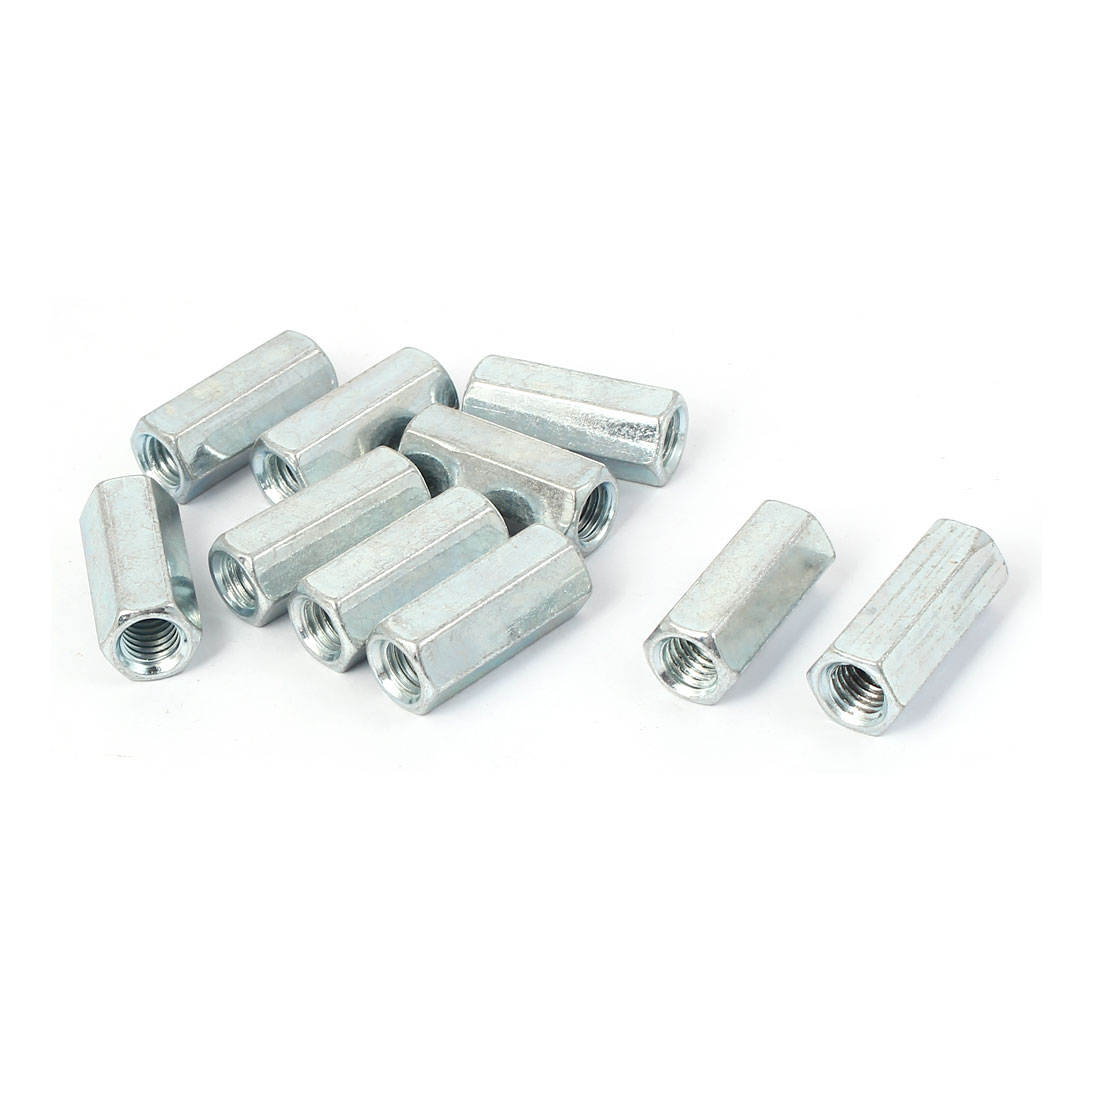 M8 Female Thread Straight Fitting Hex Rod Coupling Nuts Silver Tone 10 Pcs